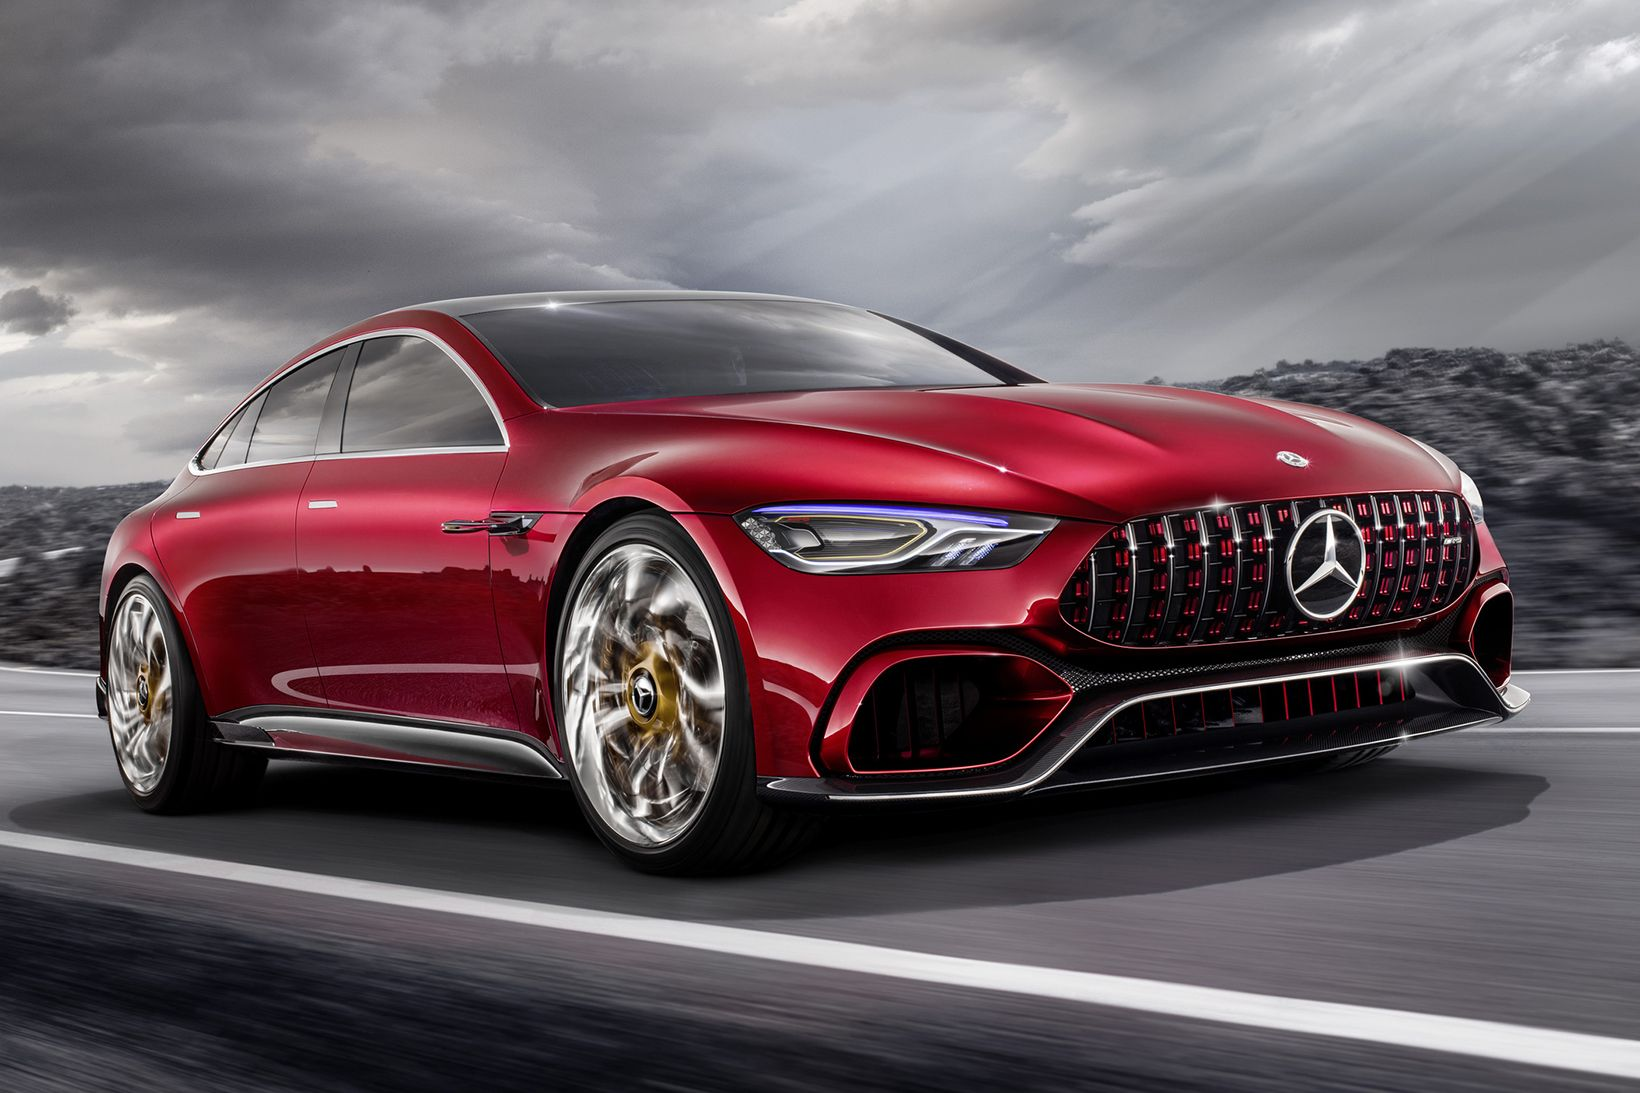 Mercedes Amg Introduces A Four Door Gt Concept At The Geneva Motor